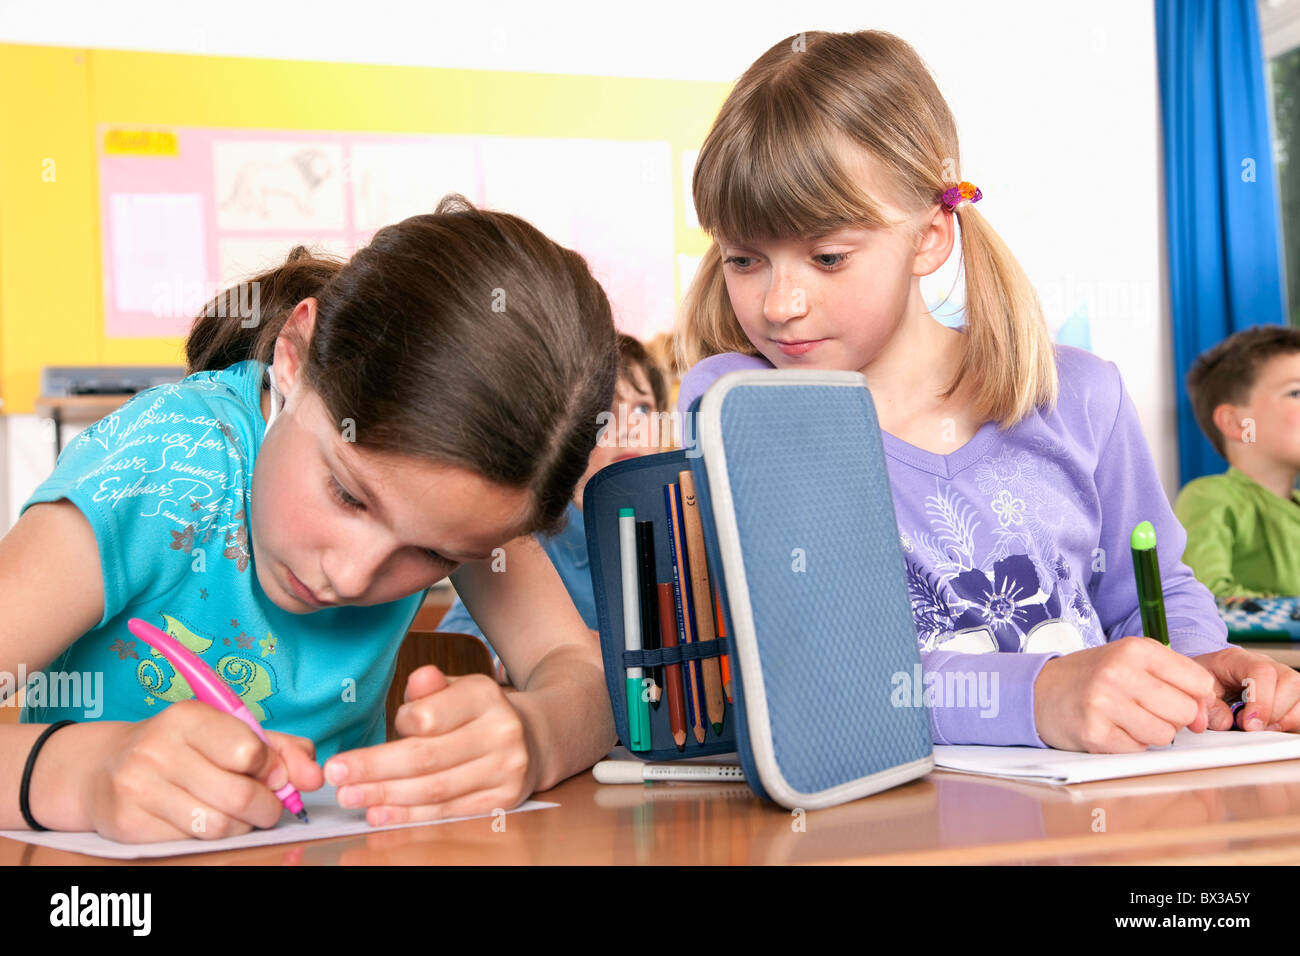 two young girls writing test in classroom one trying to cheat - Stock Image